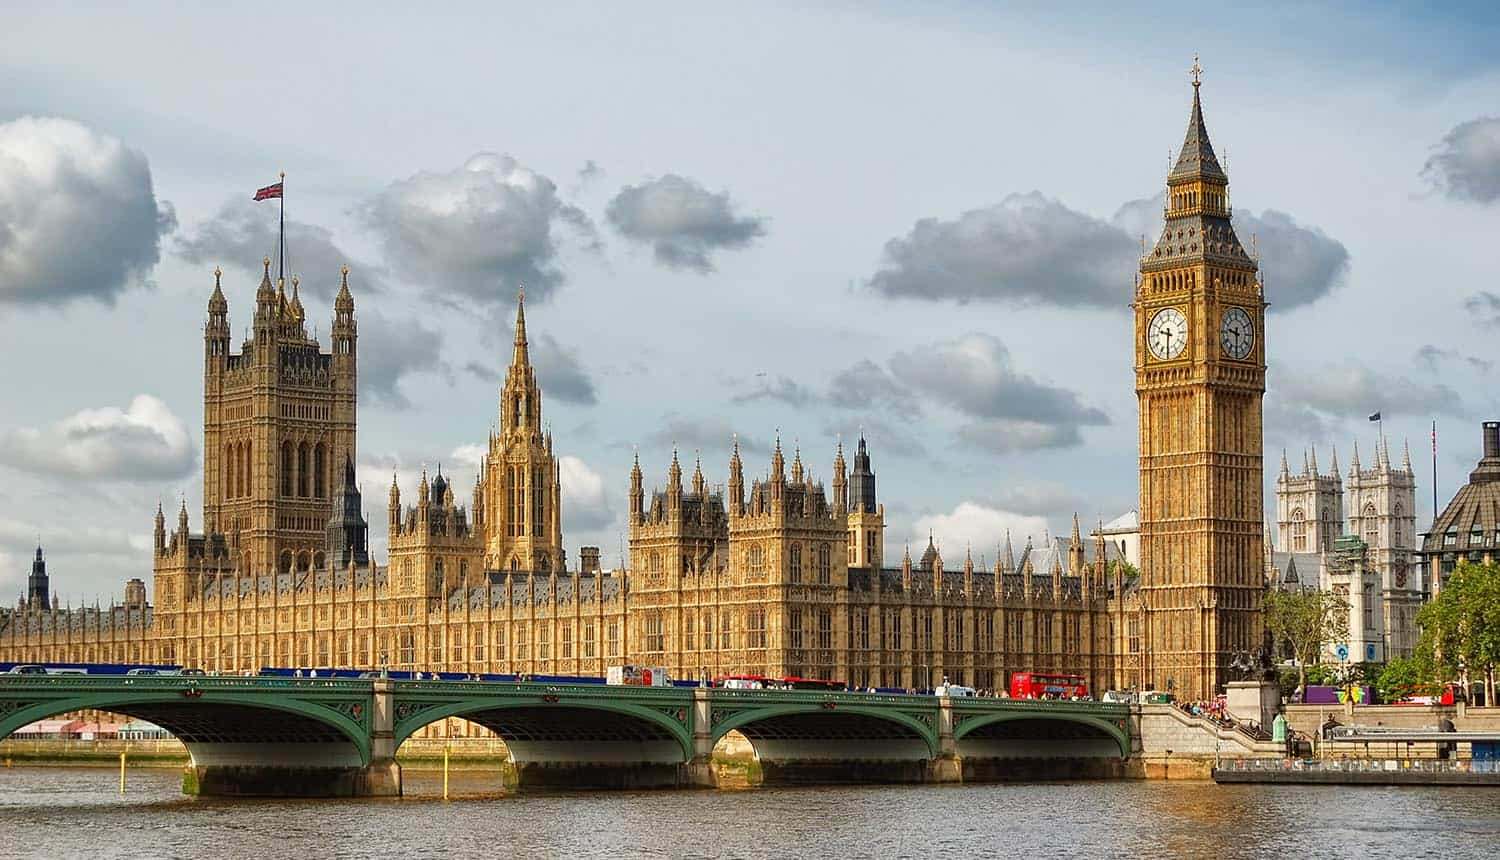 Houses of Parliament and Westminster Bridge in London showing UK data protection watchdog asking for seizure powers